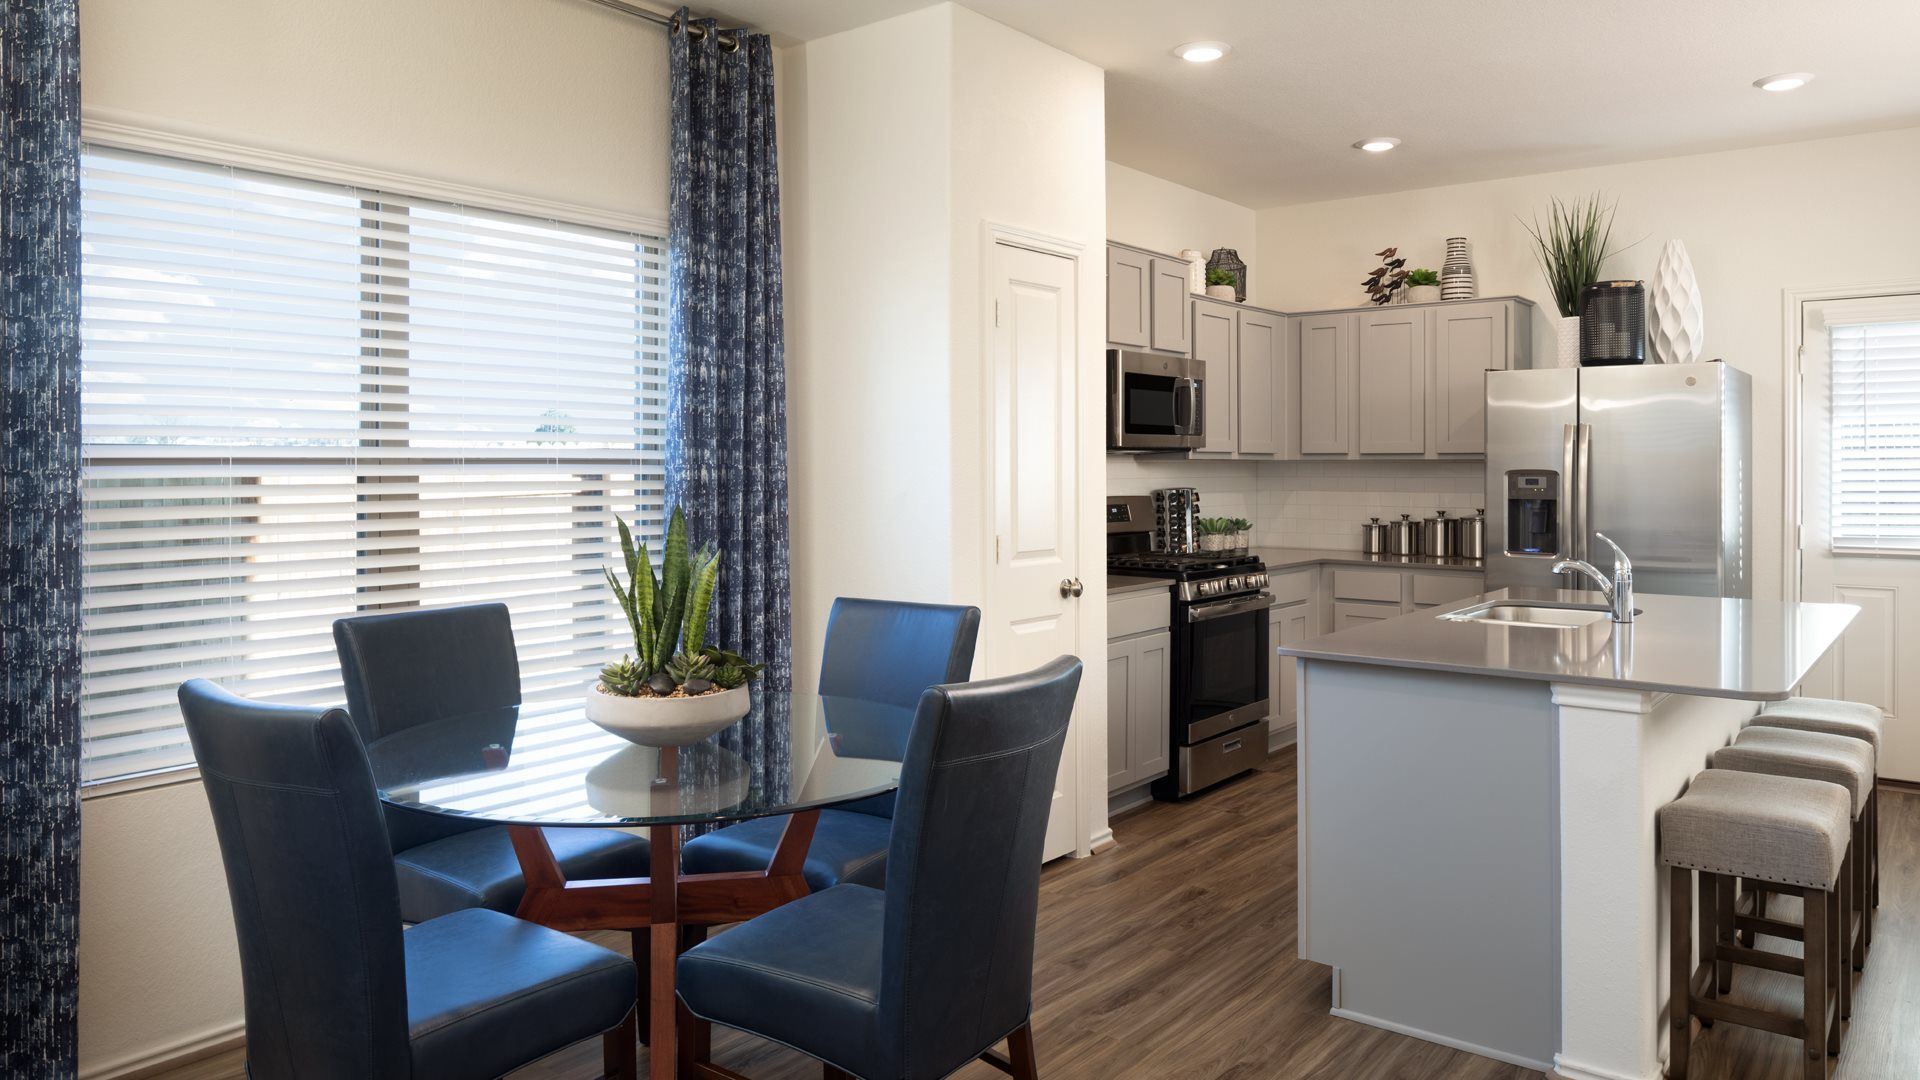 'Sun Chase - Haywood Collection' by Lennar - Austin Homebuilding in Austin